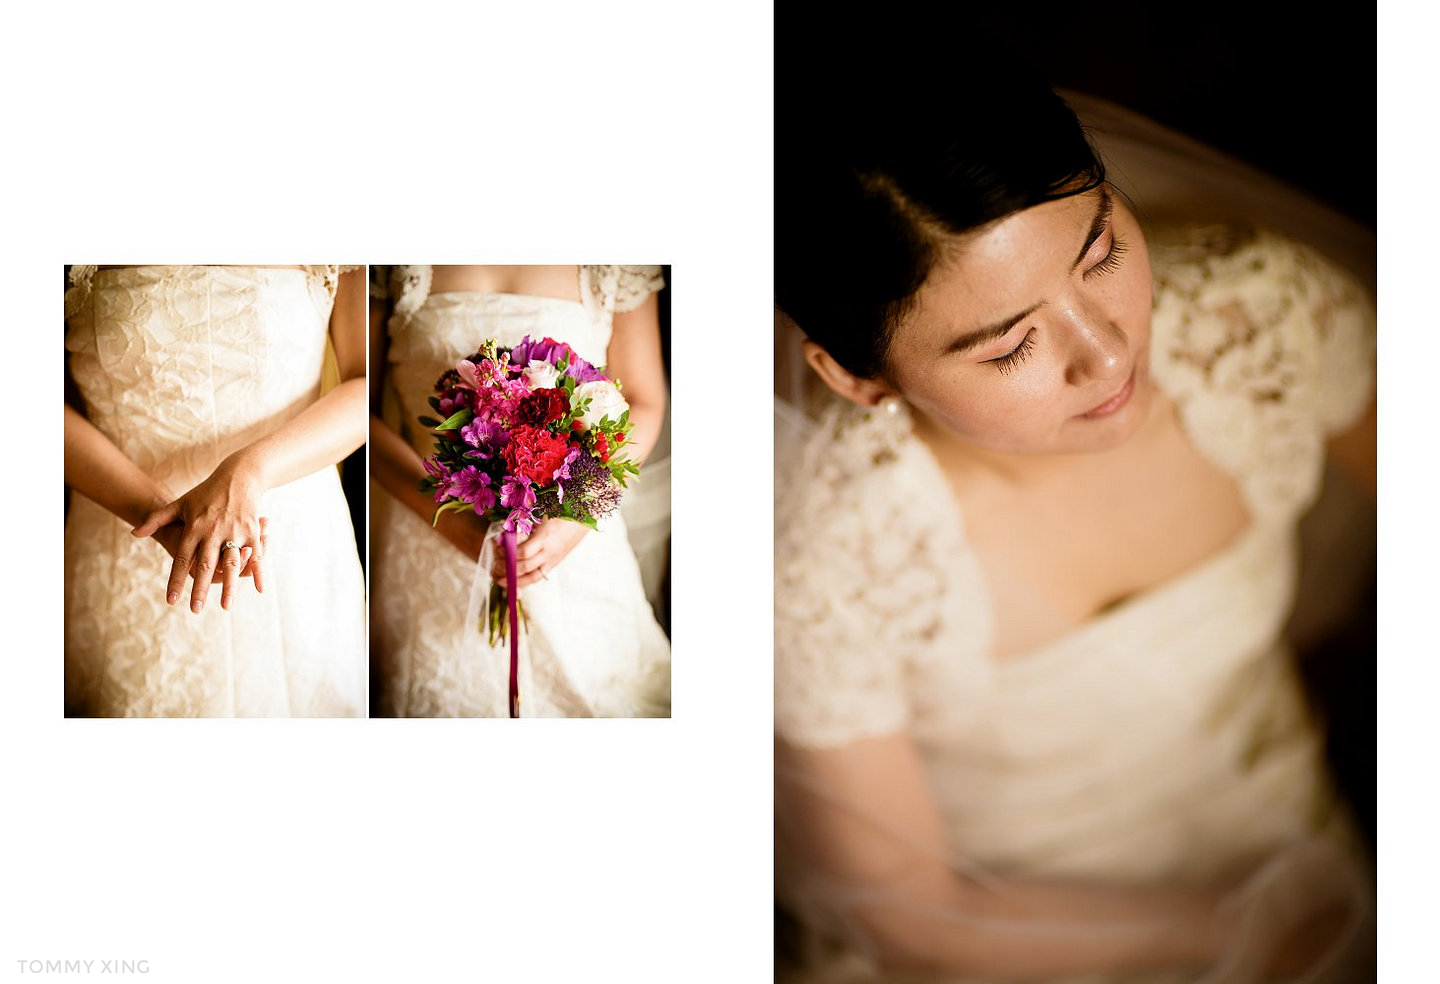 Tommy Xing Photography Seattle CAVE B ESTATE WINERY wedding 西雅图酒庄婚礼03.jpg